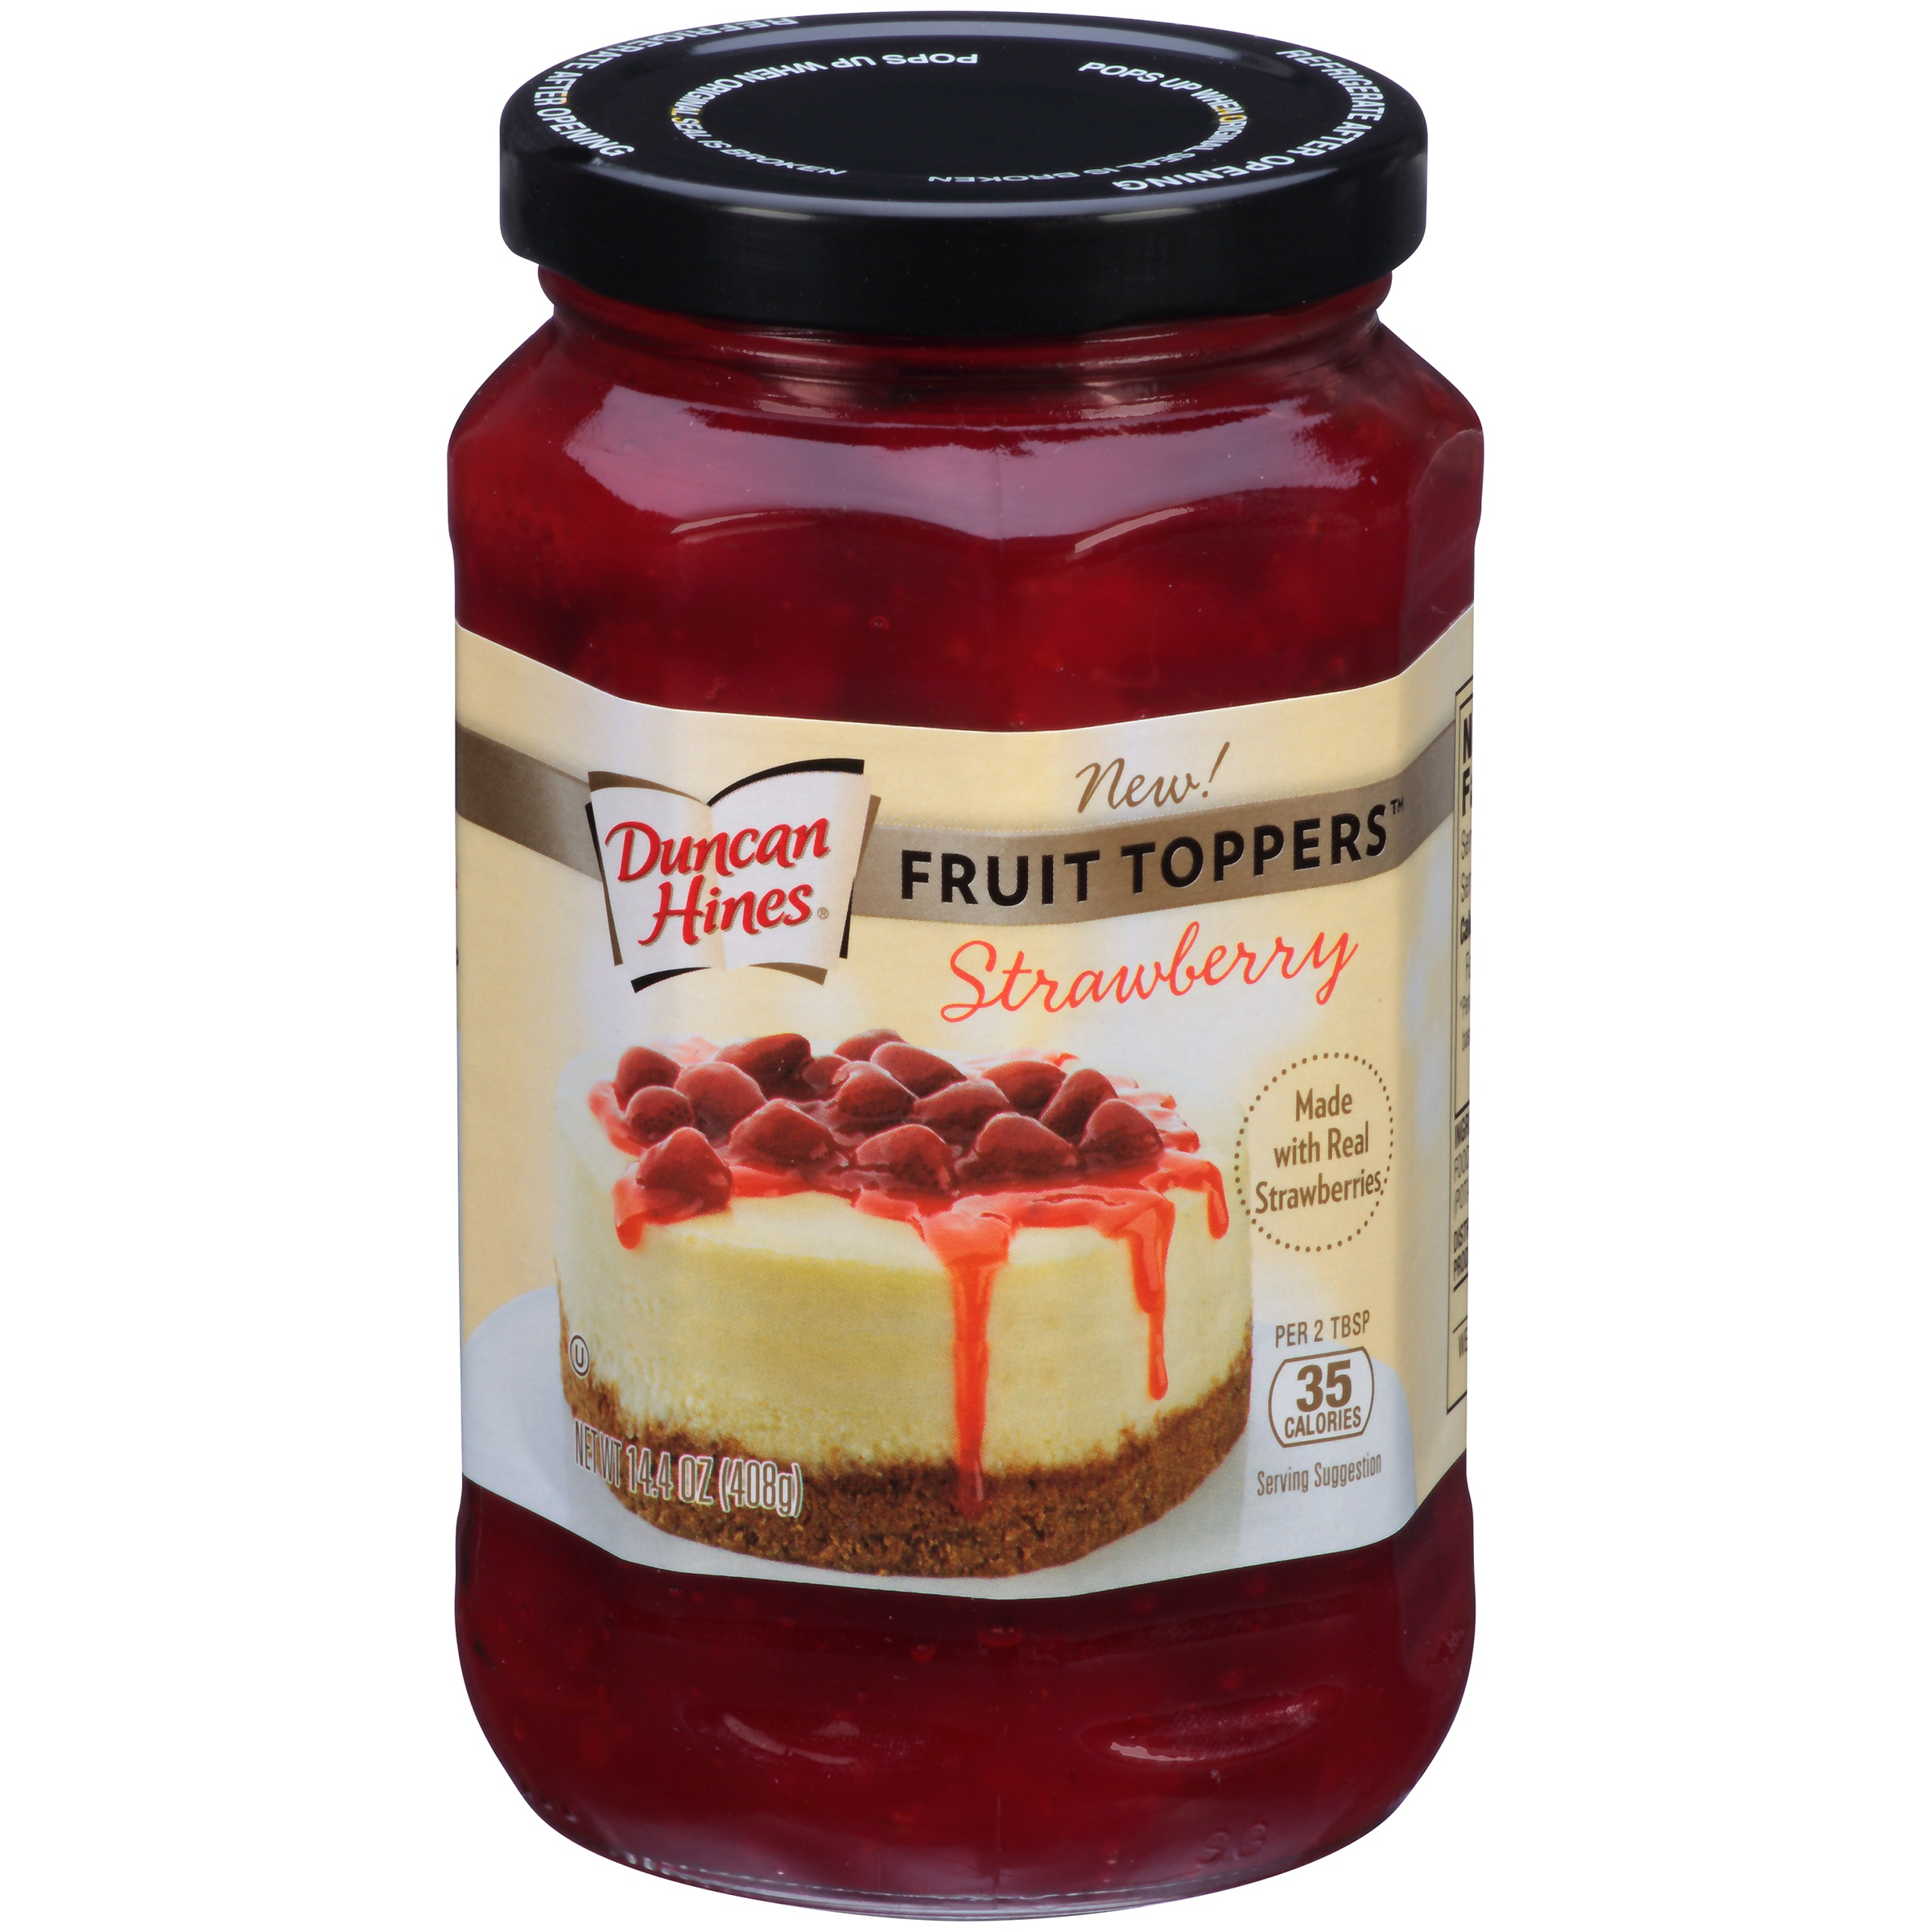 Duncan Hines Fruit Toppers Strawberry Dessert Topping, 14.4 oz by Pinnacle Foods